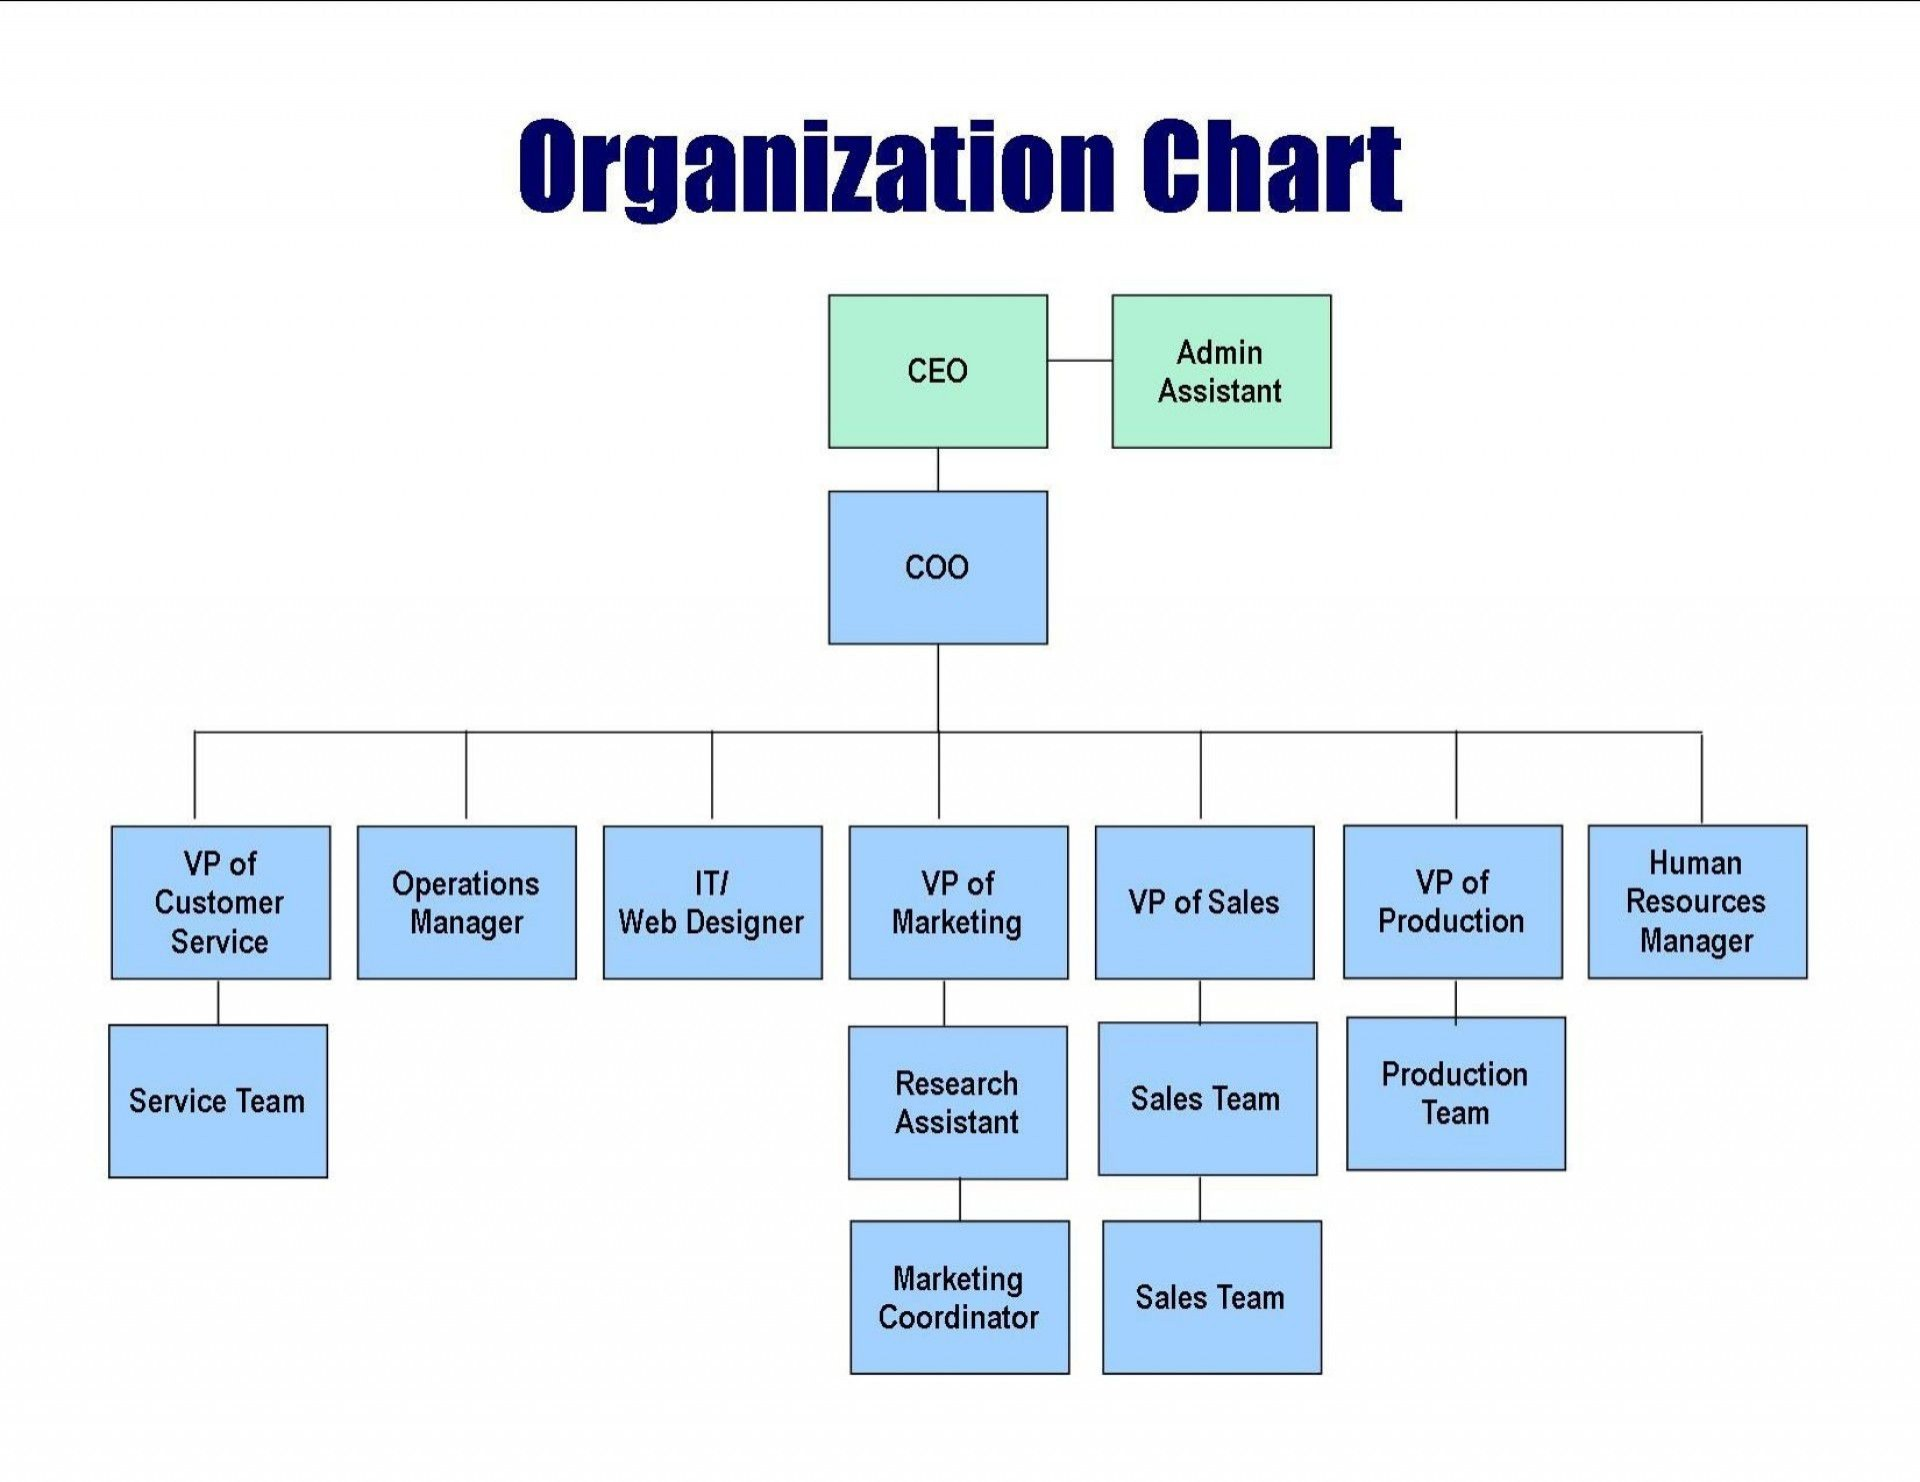 004 Rare Organizational Chart Template Word Concept  2010 2007 Free Download1920